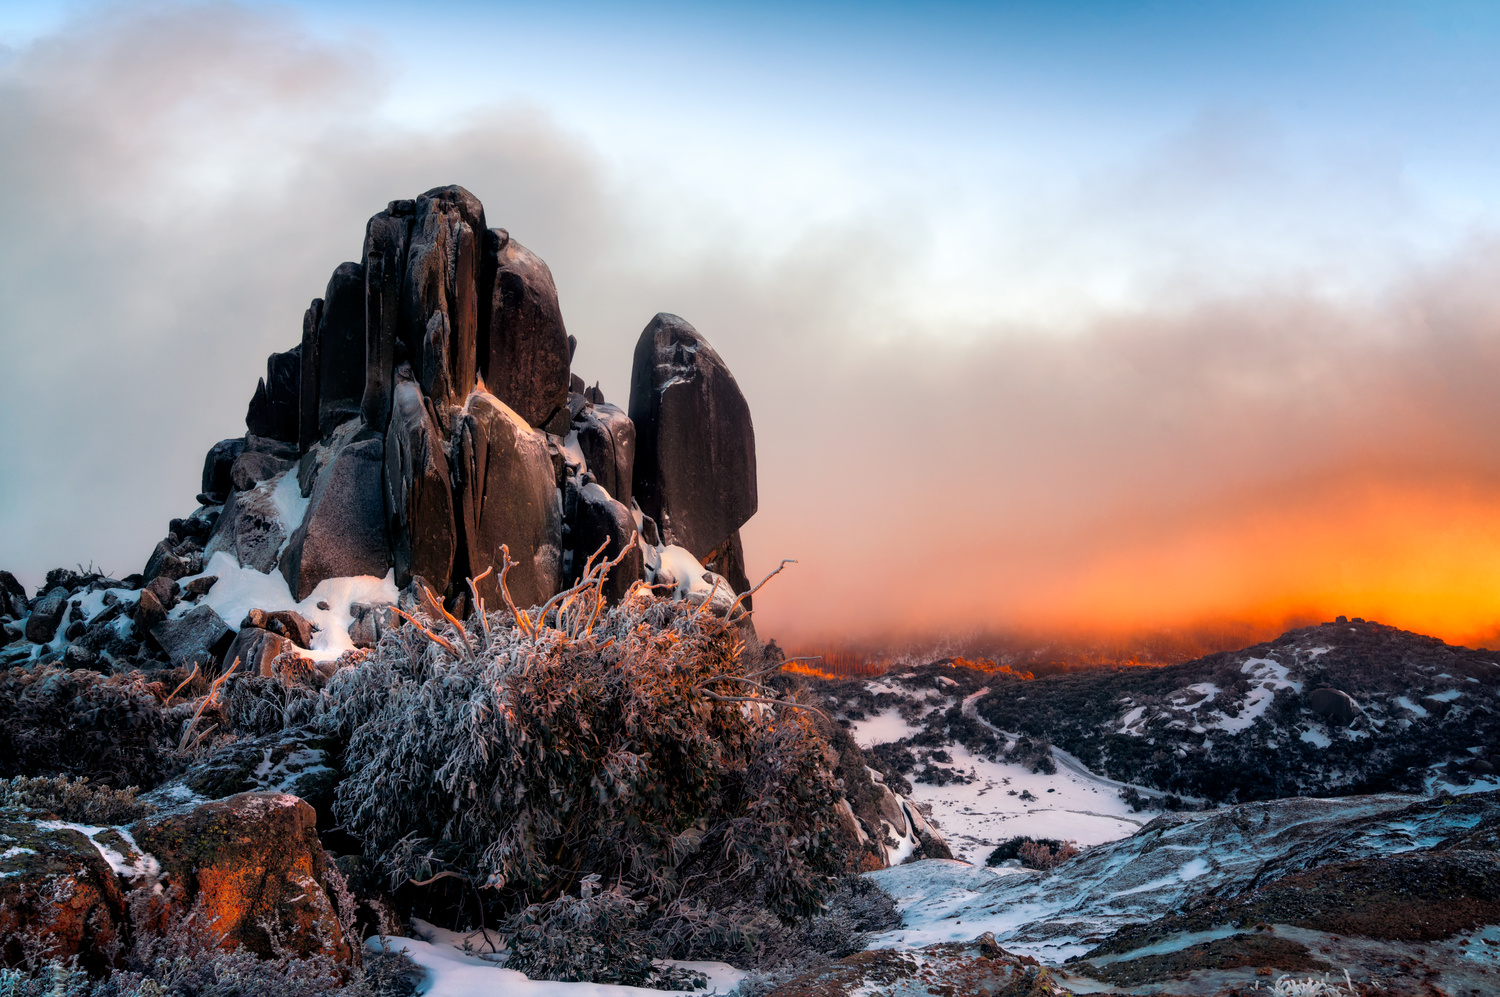 Ice and Fire by Andrew Furlan